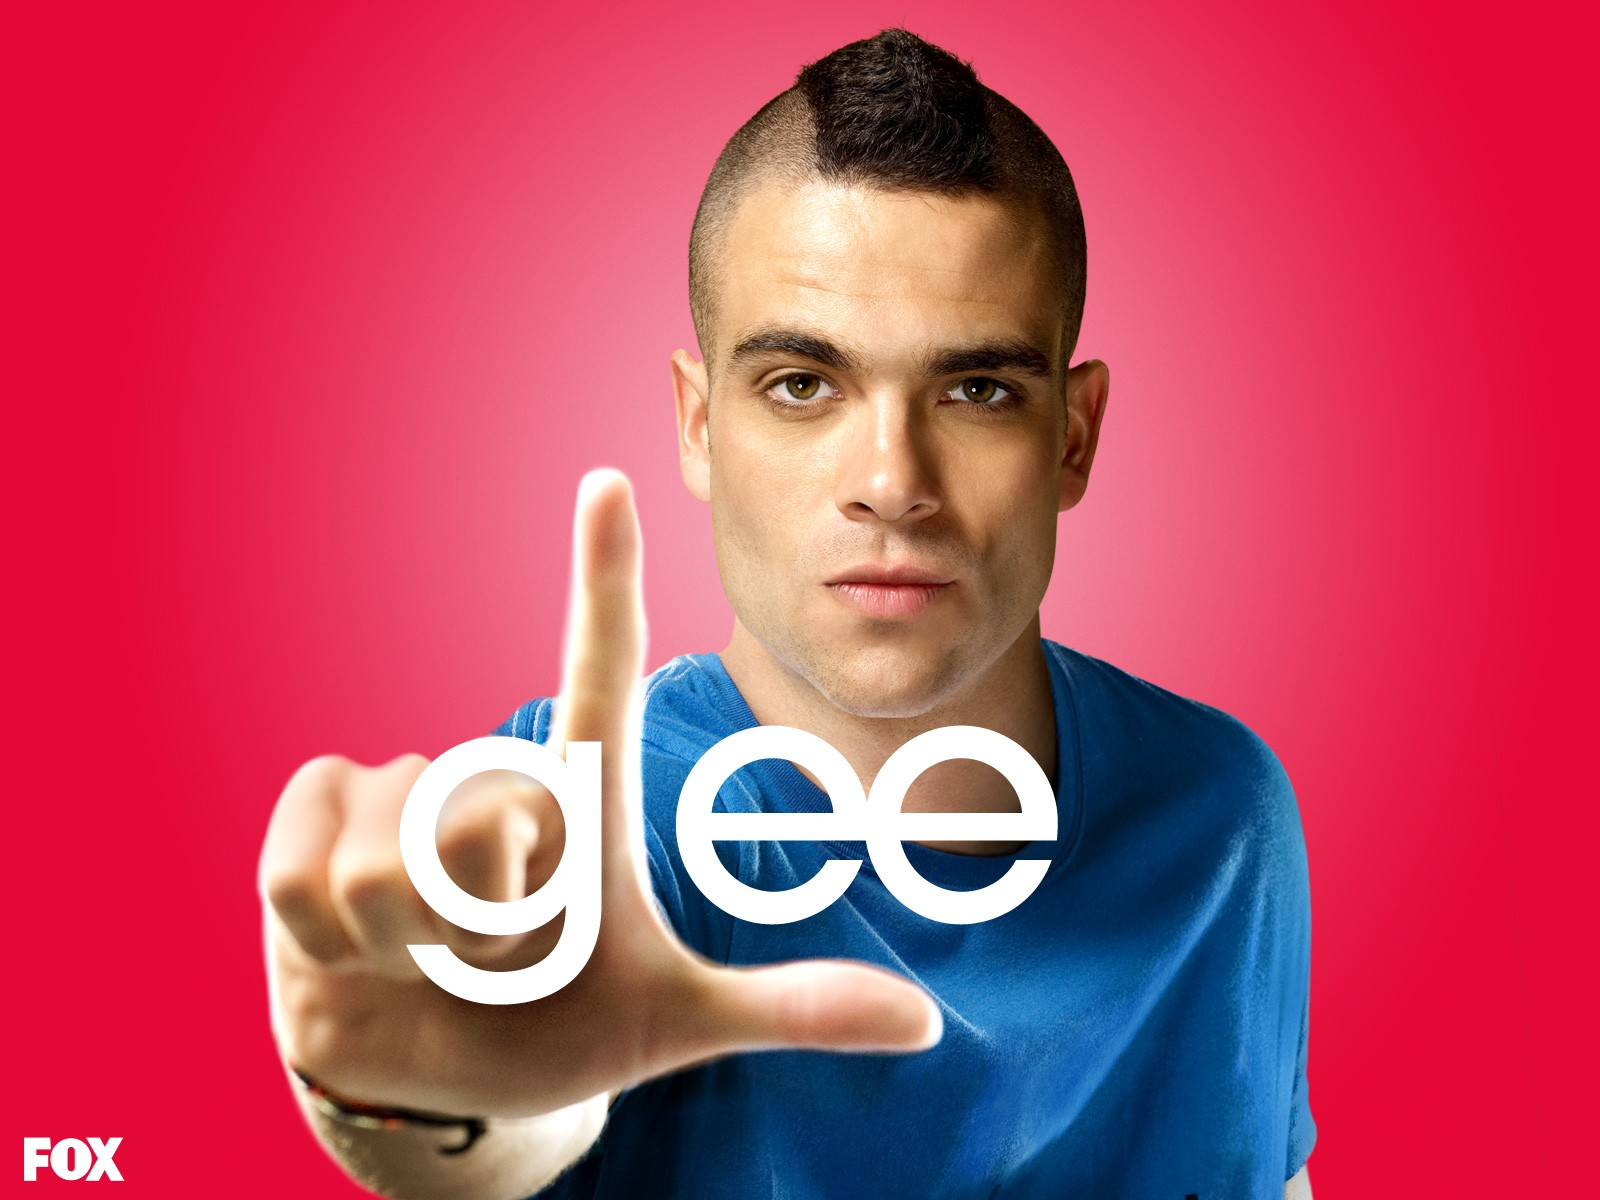 Wallpaper: Mark Salling per la stagione 1 di Glee